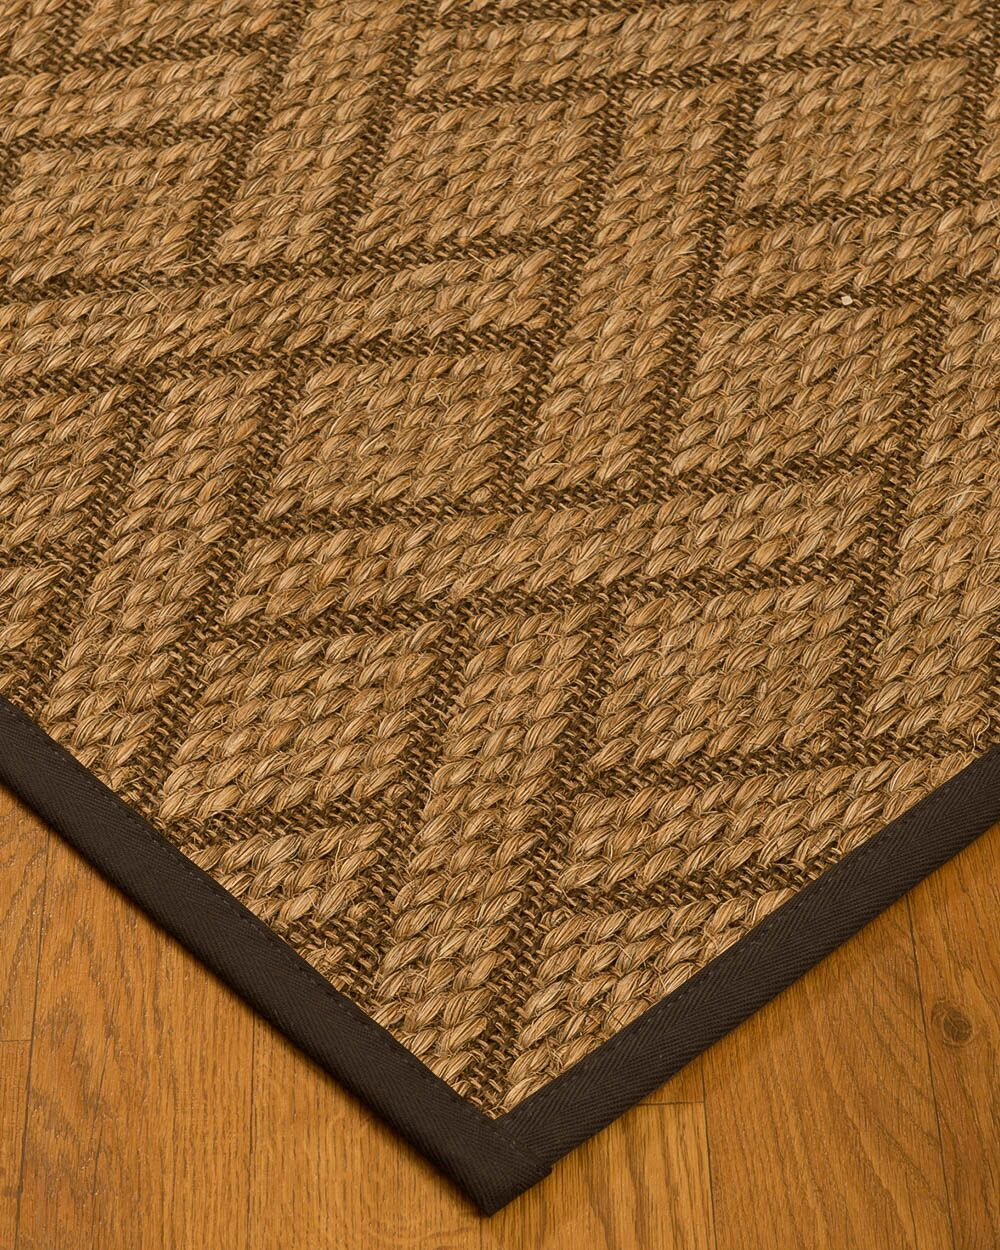 Kimbro Hand-Woven Beige/Fudge Area Rug Rug Size: Rectangle 4' x 6'